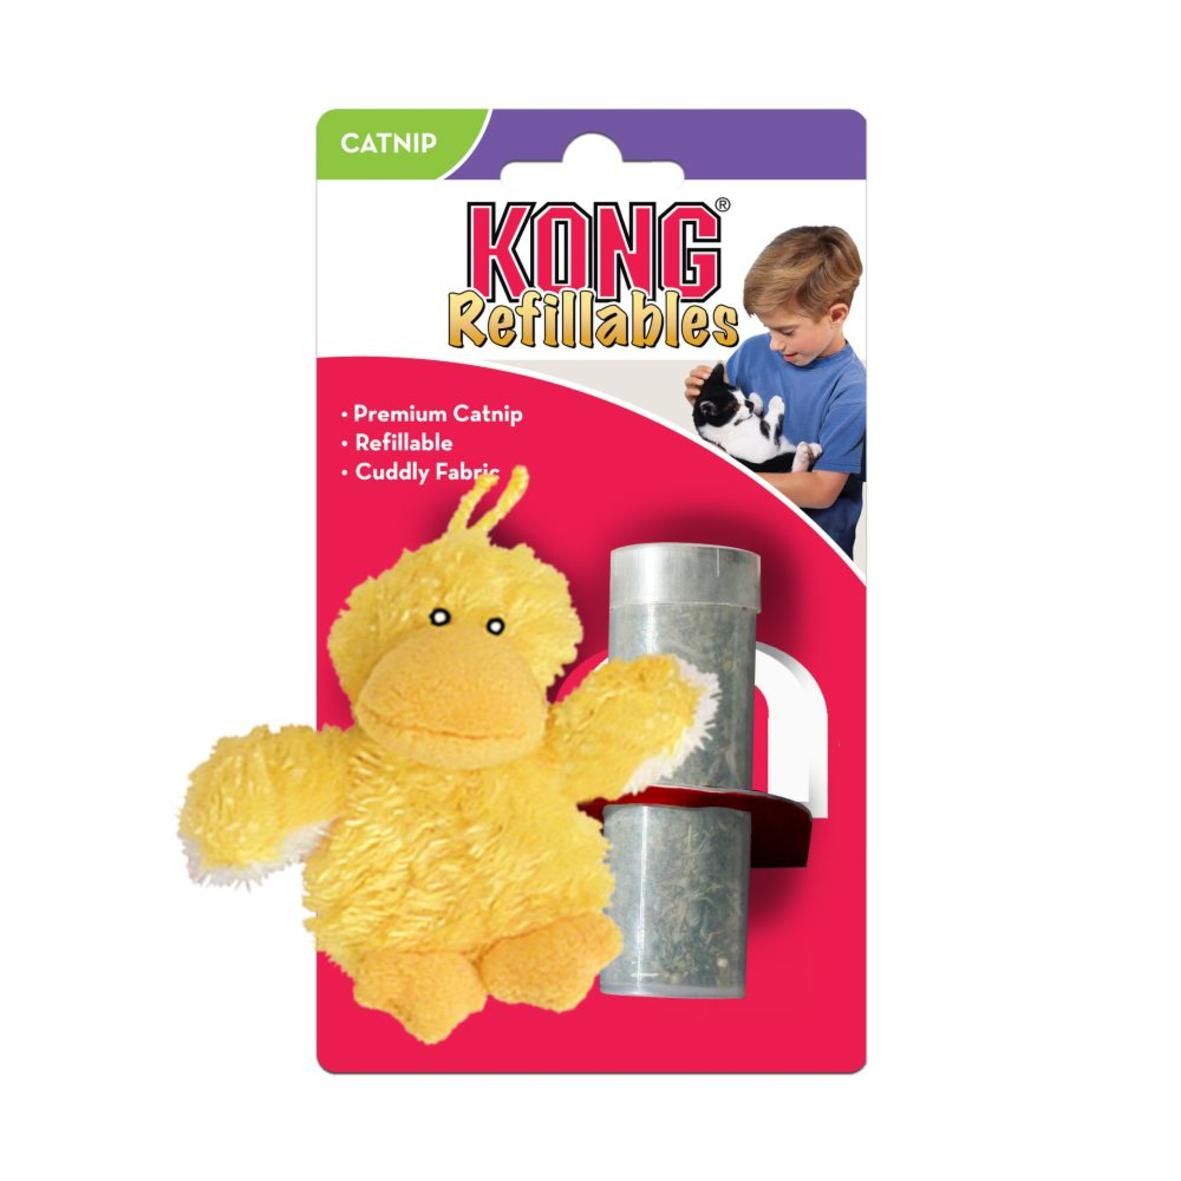 KONG Refillables Duckie with Catnip 10cm